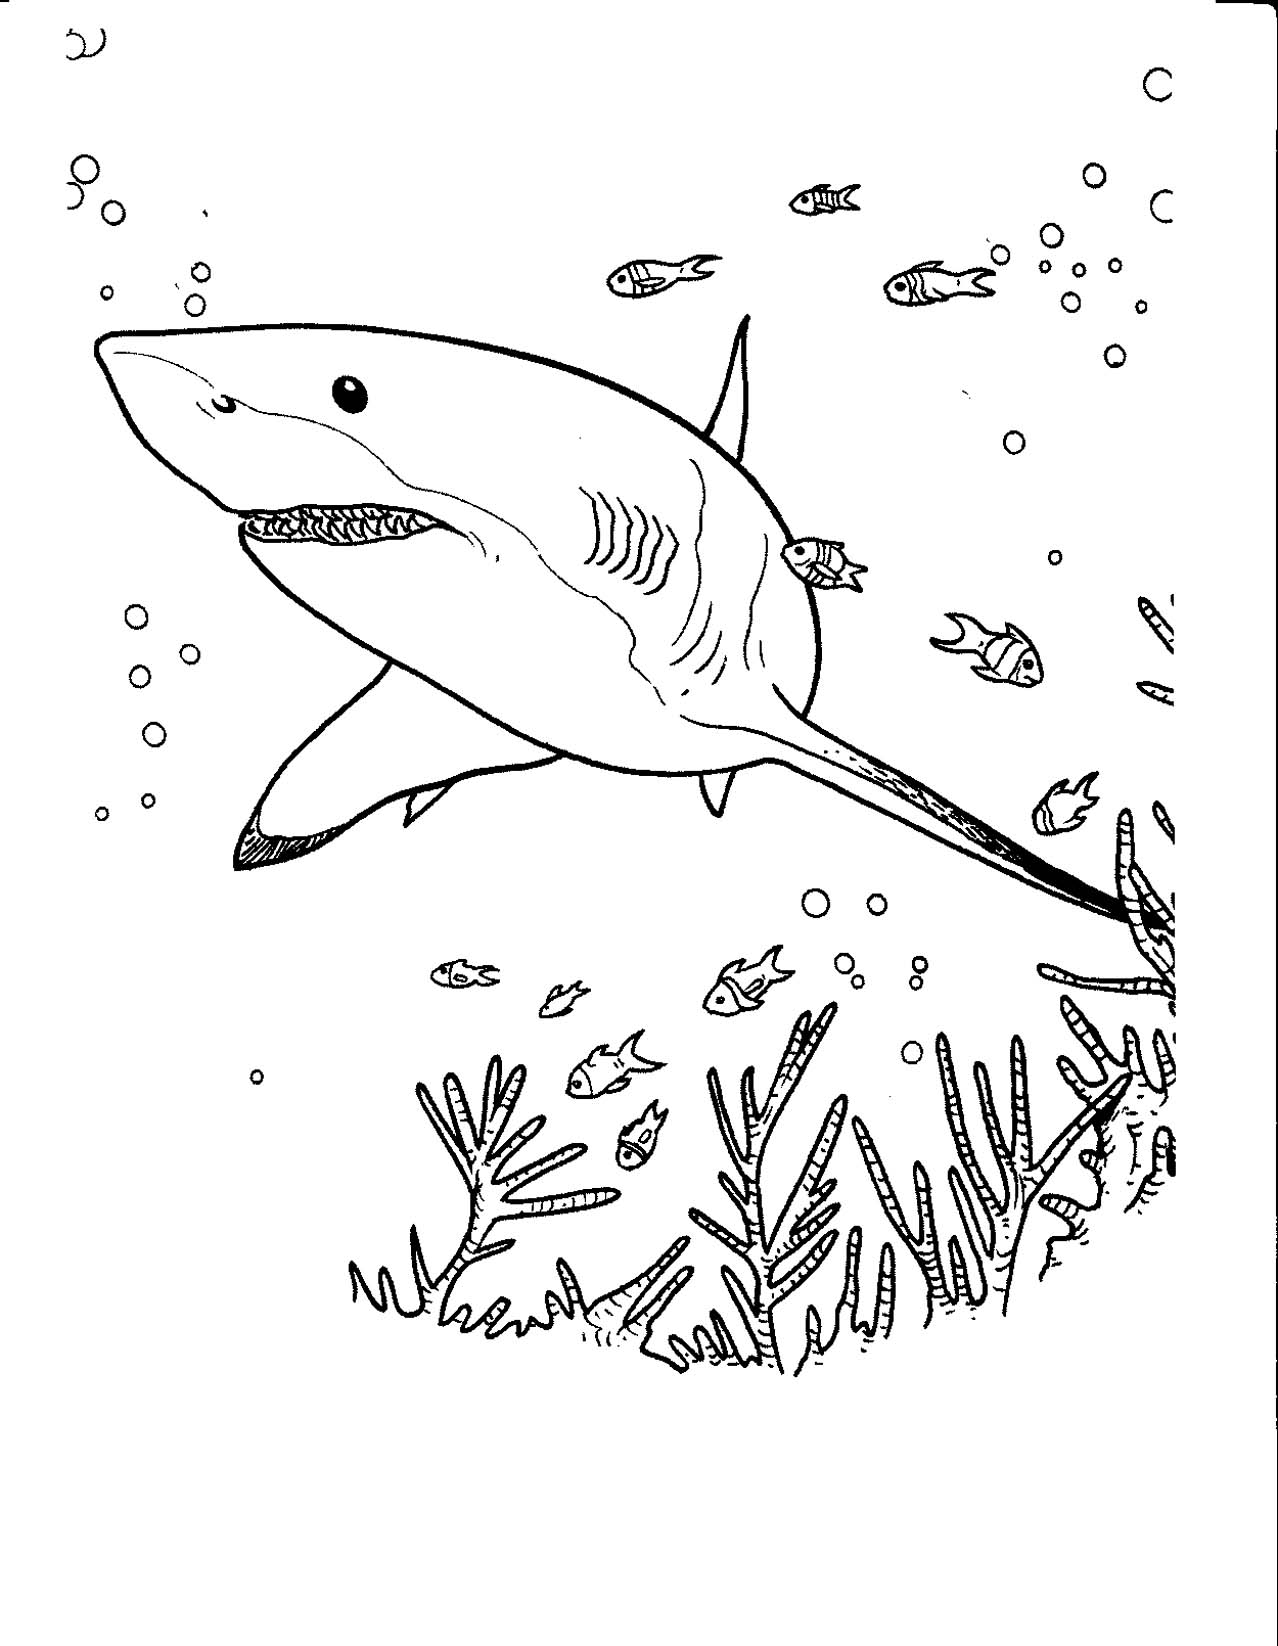 sharks pictures to color shark drawing images at getdrawings free download sharks pictures color to